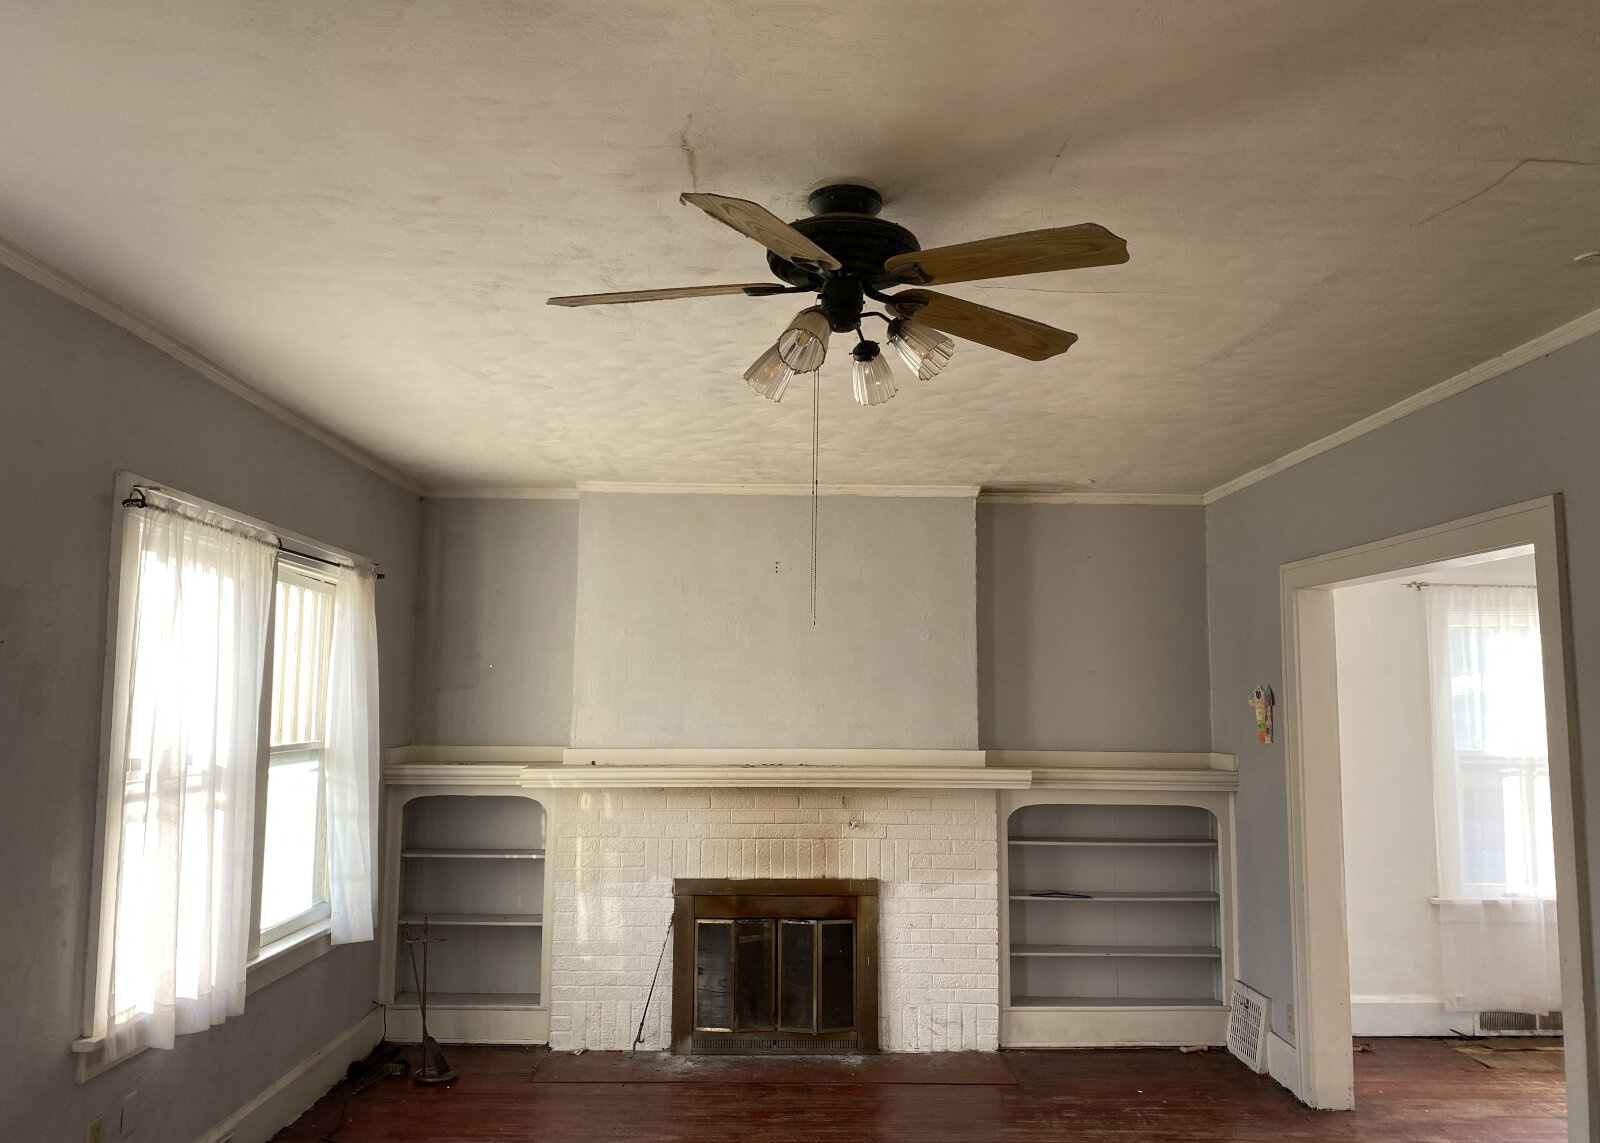 Des Moines Historic Custom home (before)